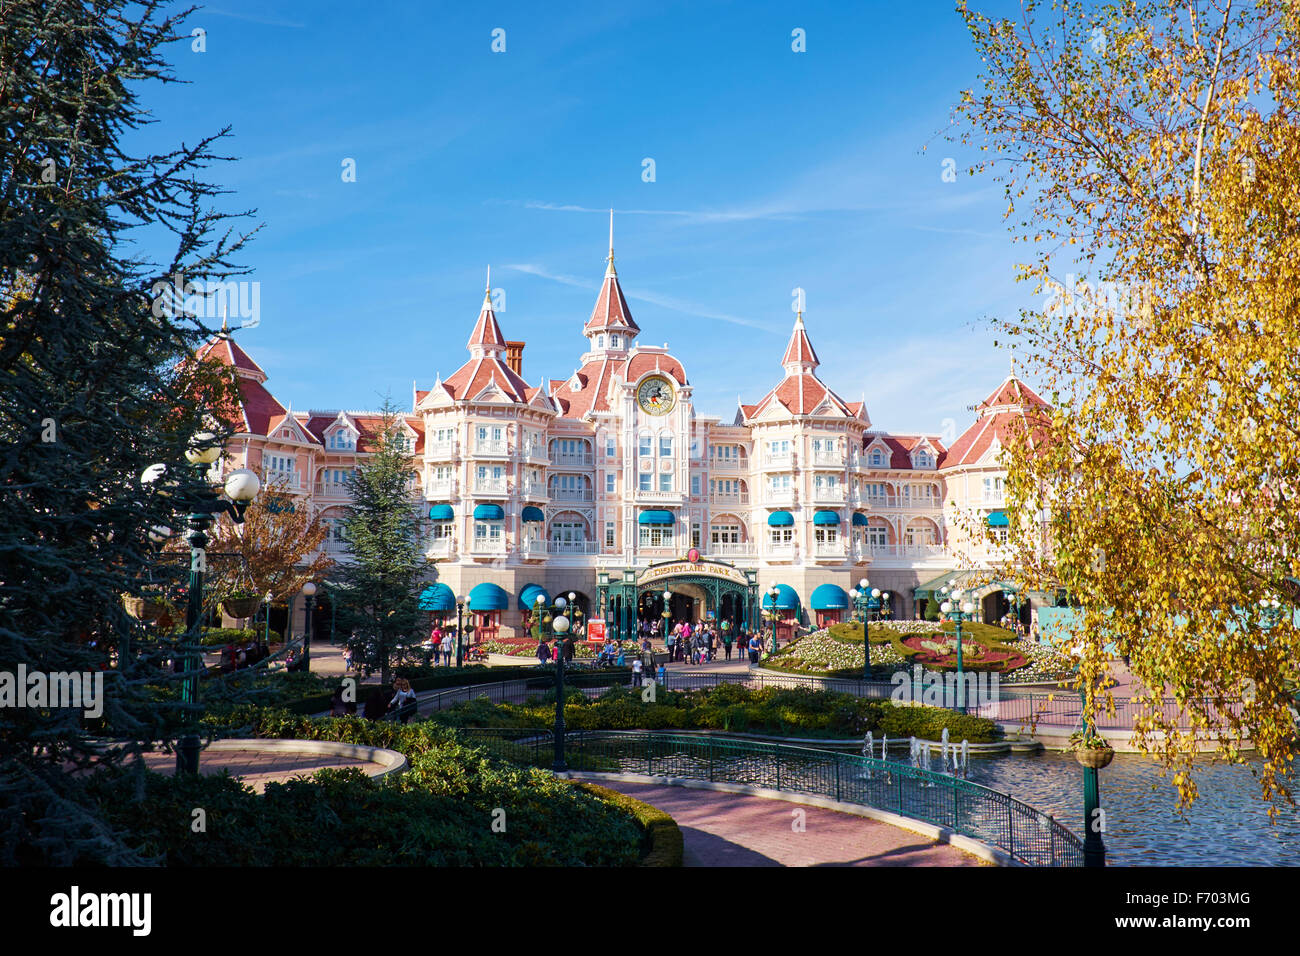 entrance to disneyland paris stock photos entrance to disneyland paris stock images alamy. Black Bedroom Furniture Sets. Home Design Ideas